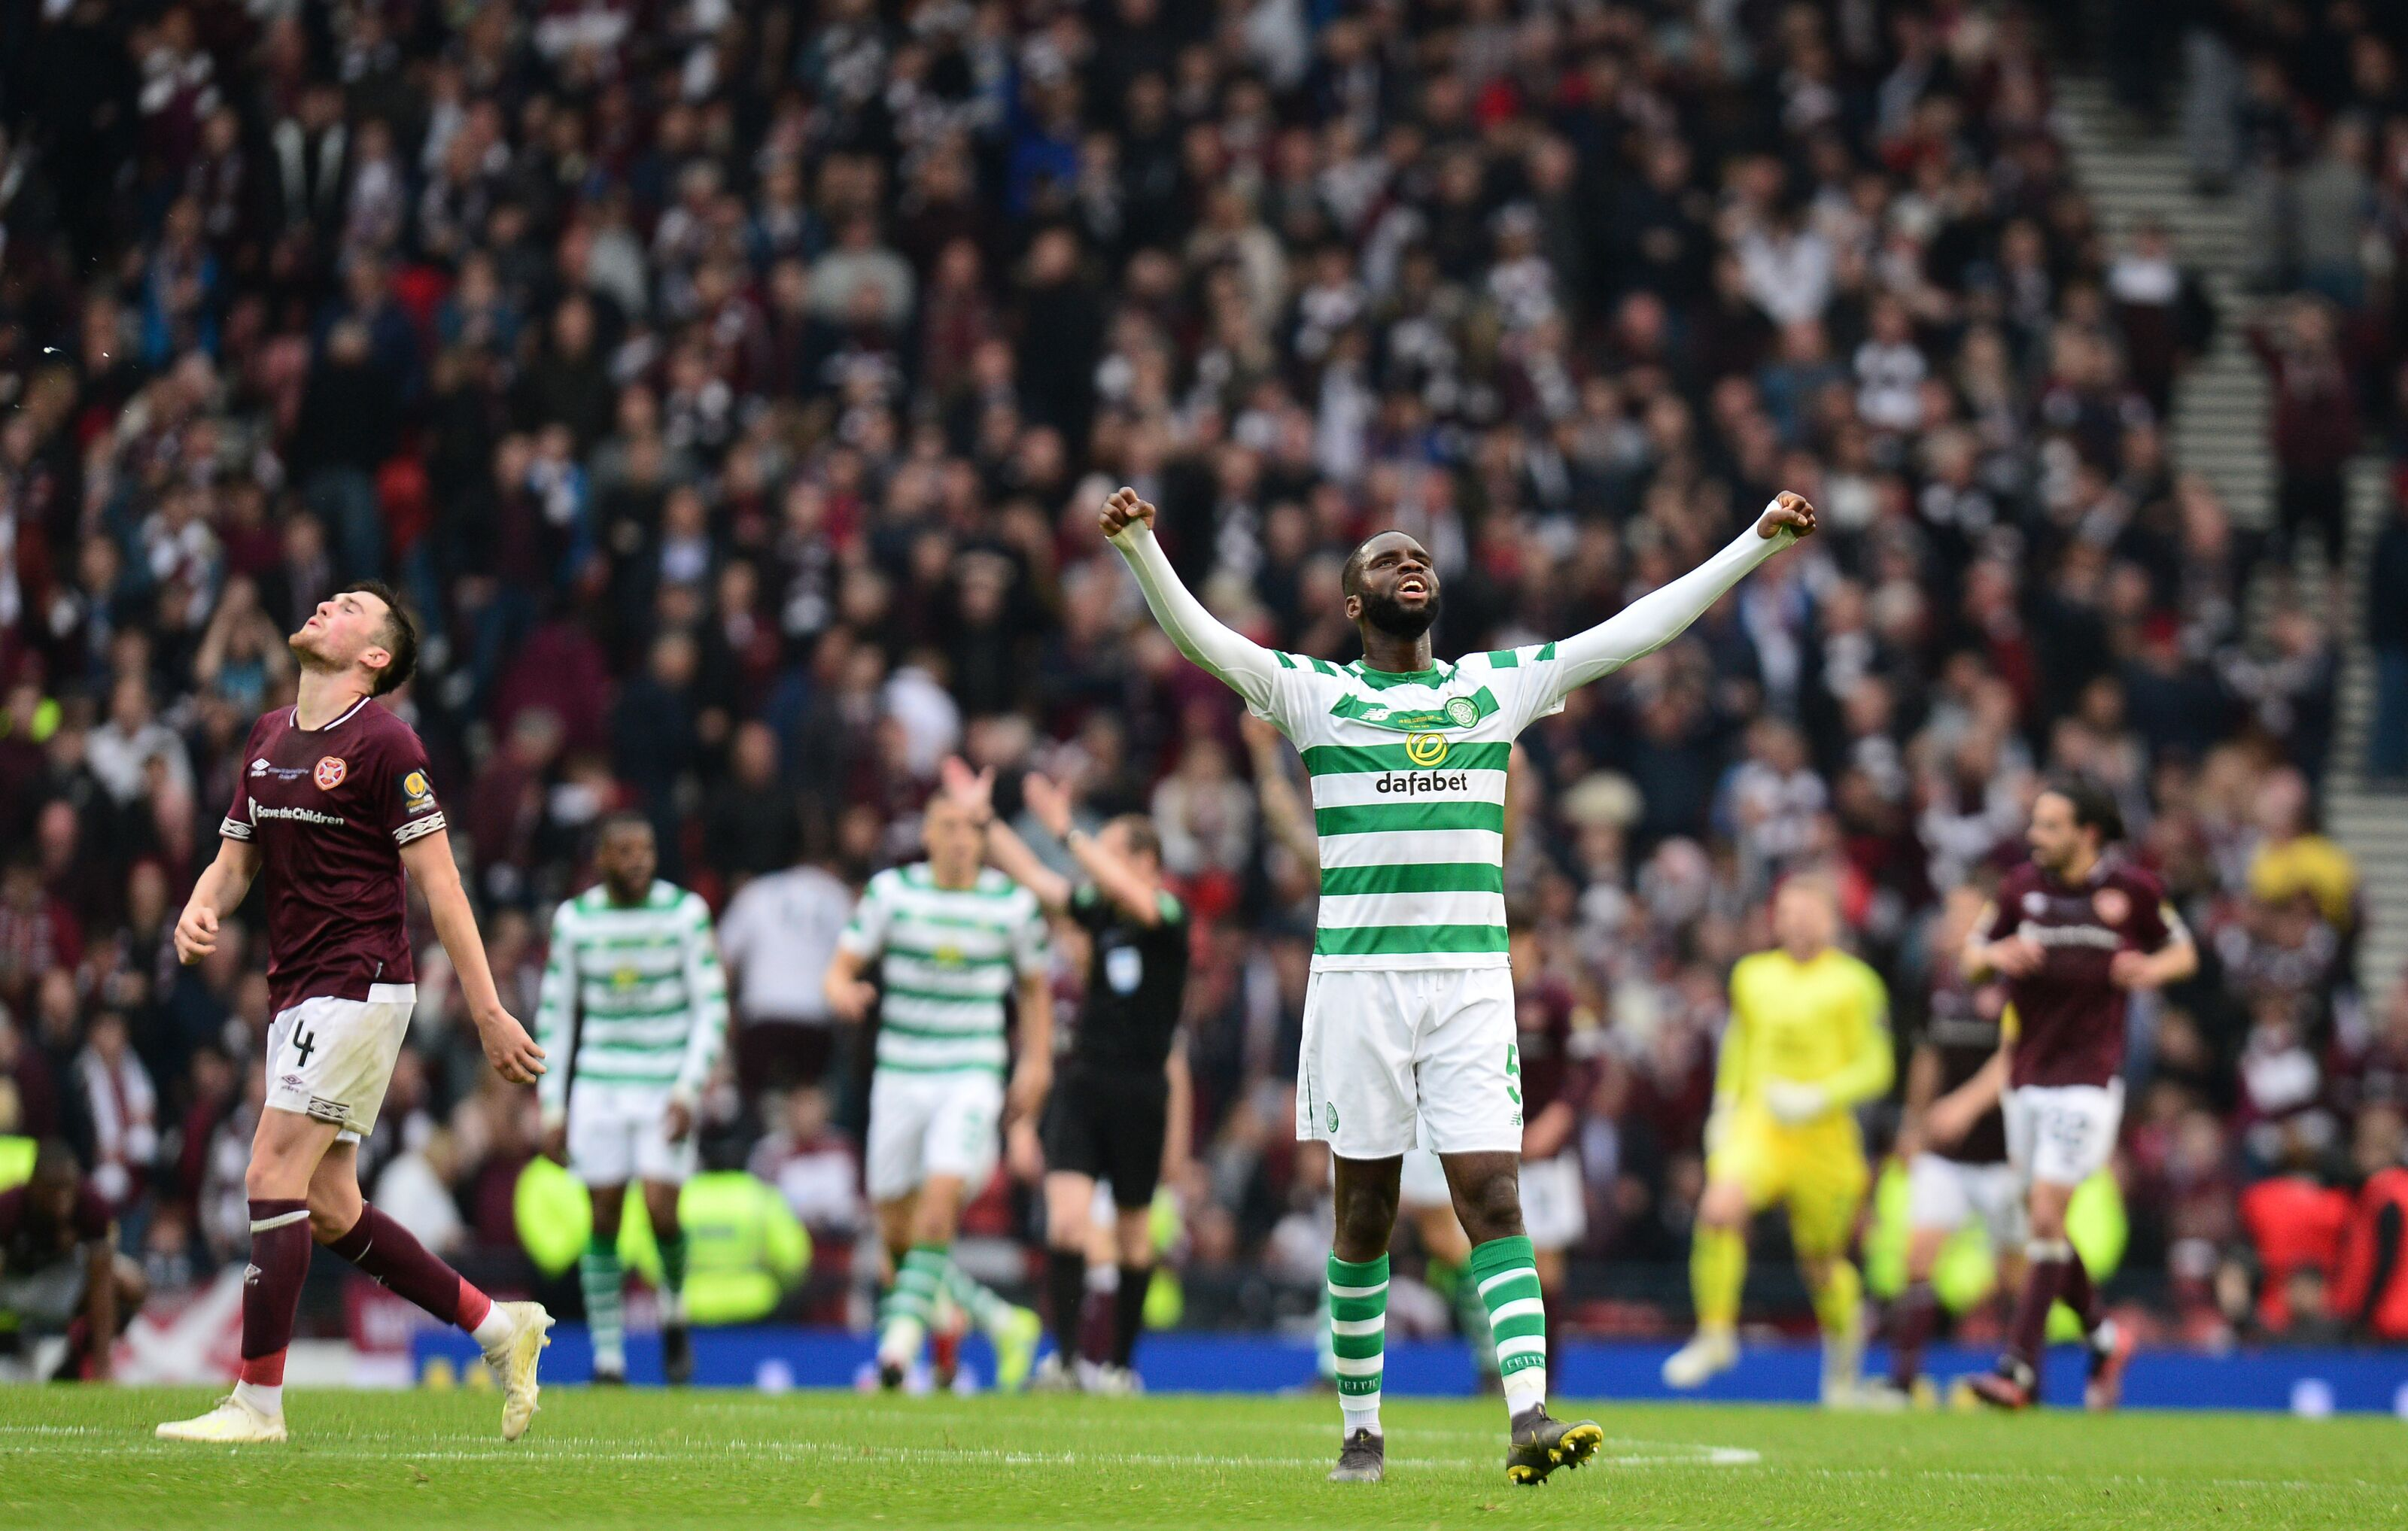 Celtic Returns to SPL Action Against Hearts